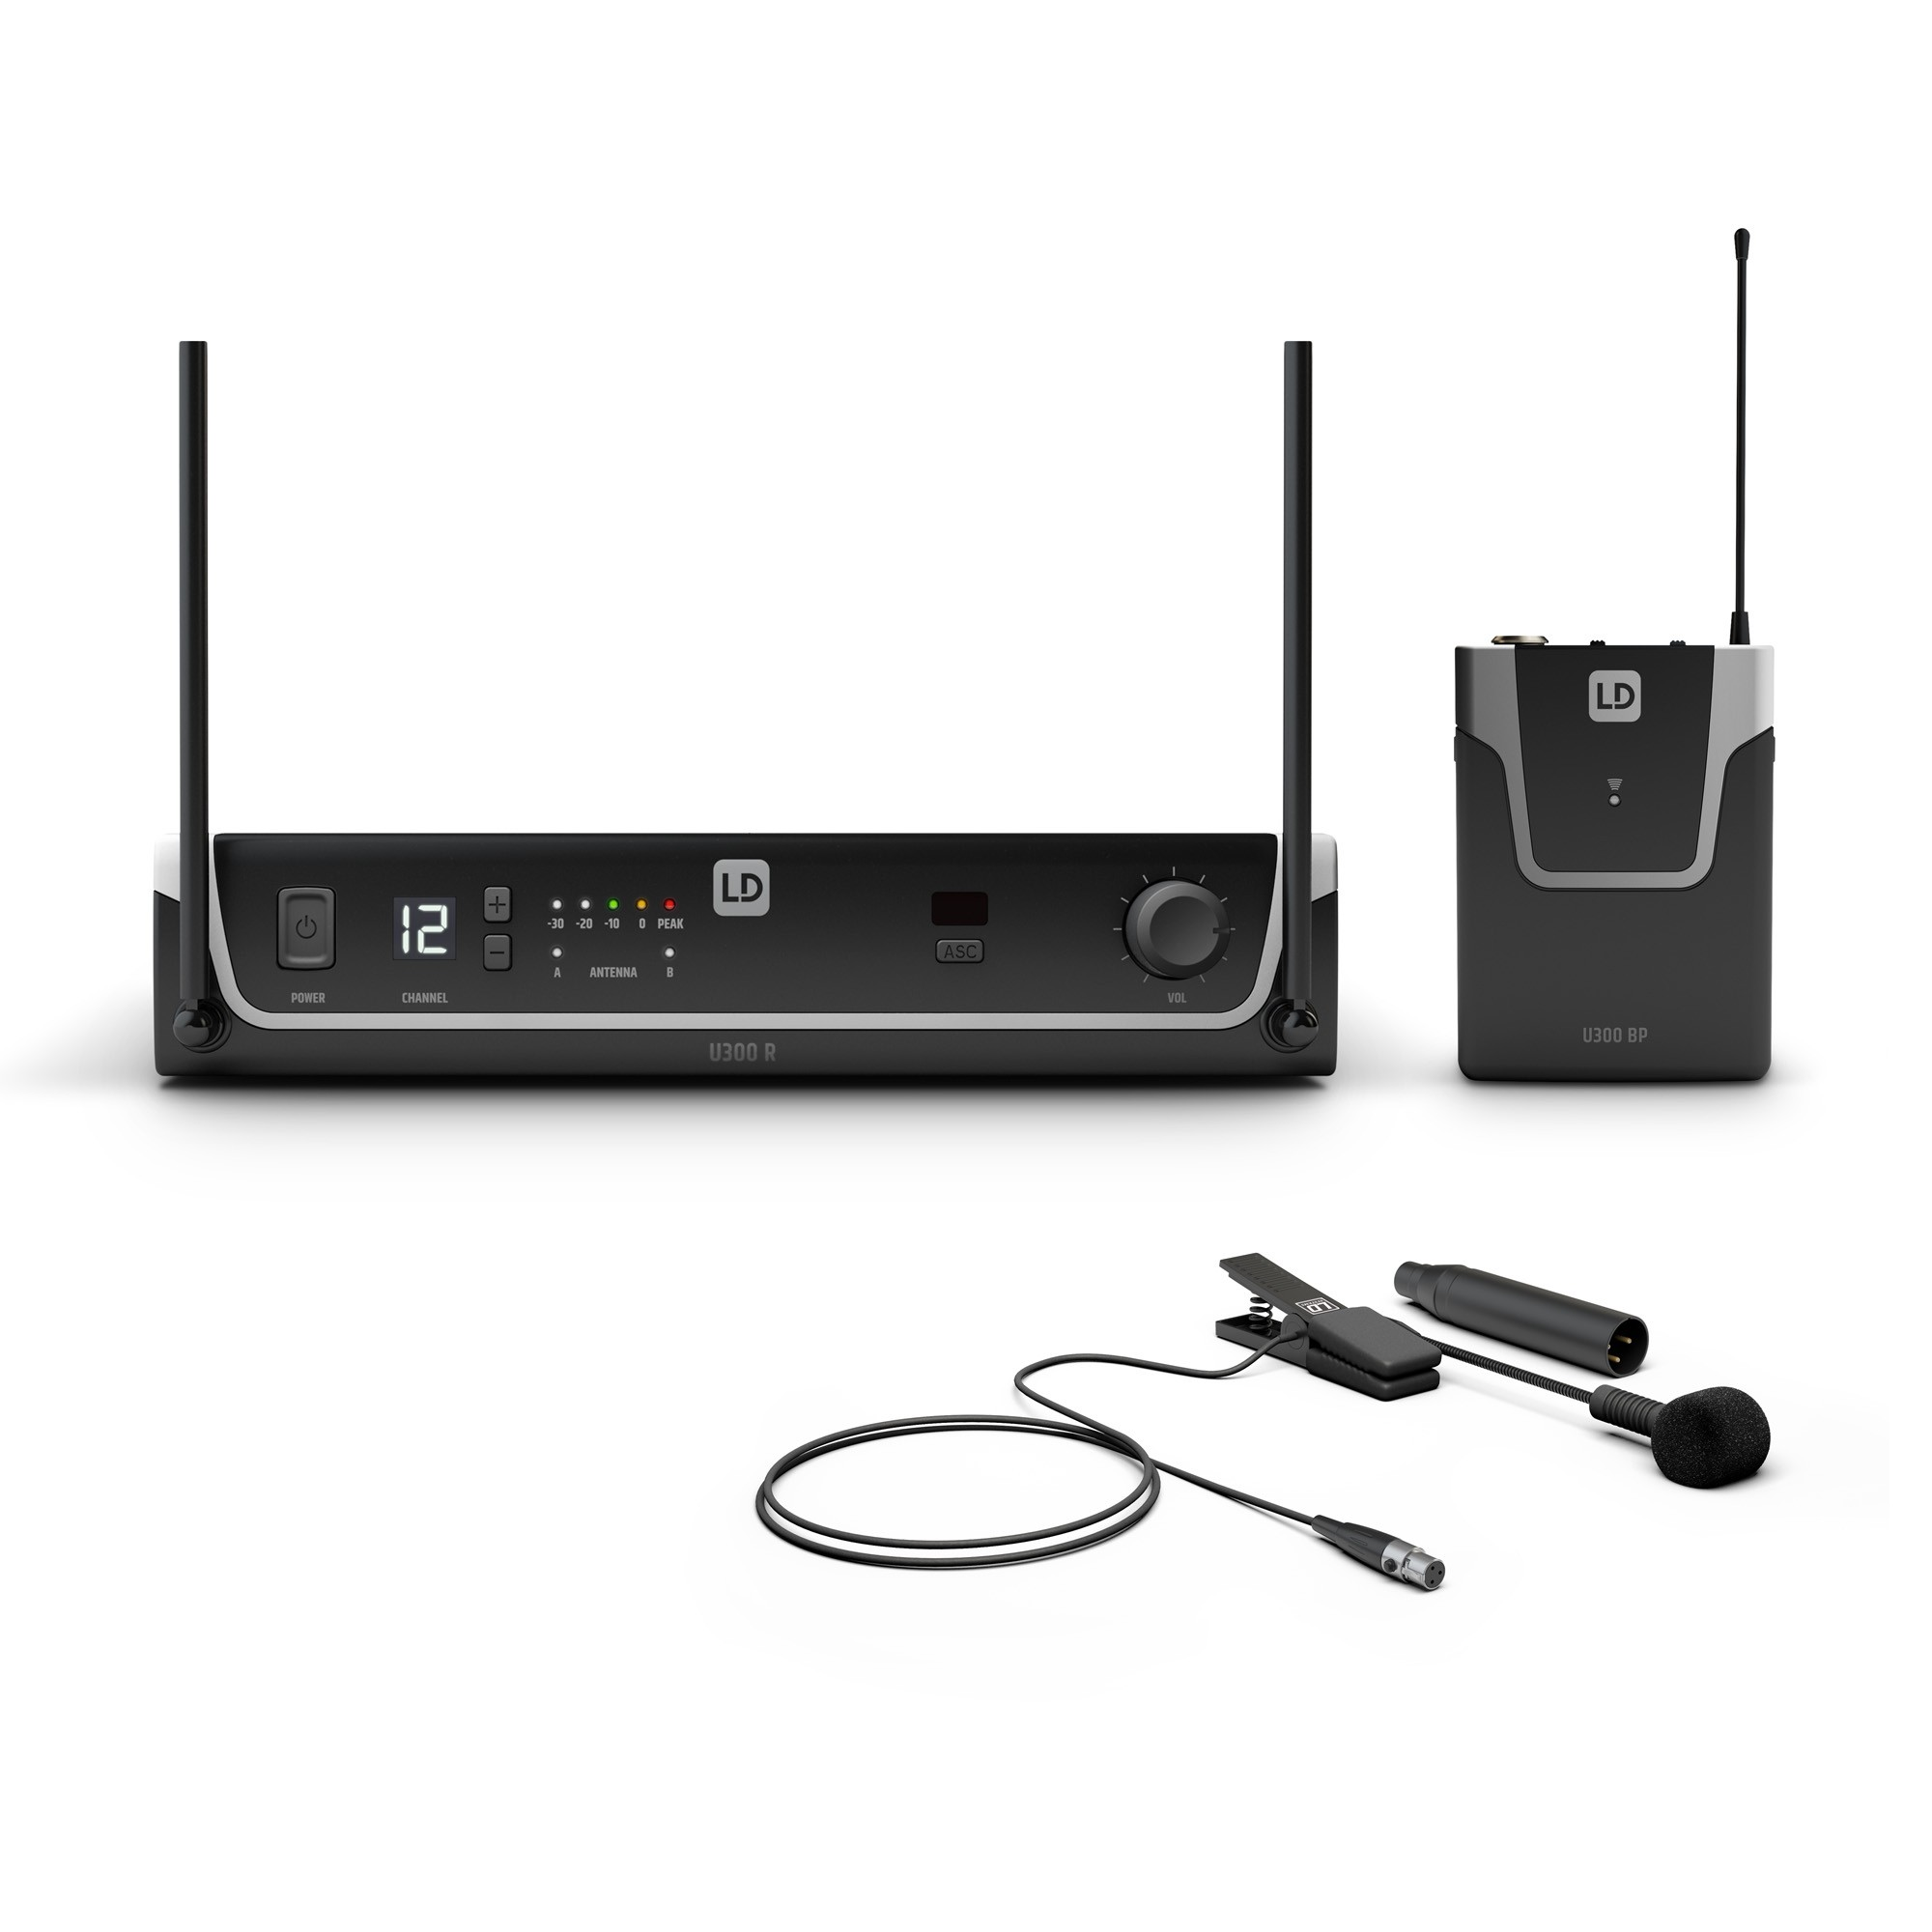 U306 BPW Wireless Microphone System with Bodypack and Brass Instrument Microphone